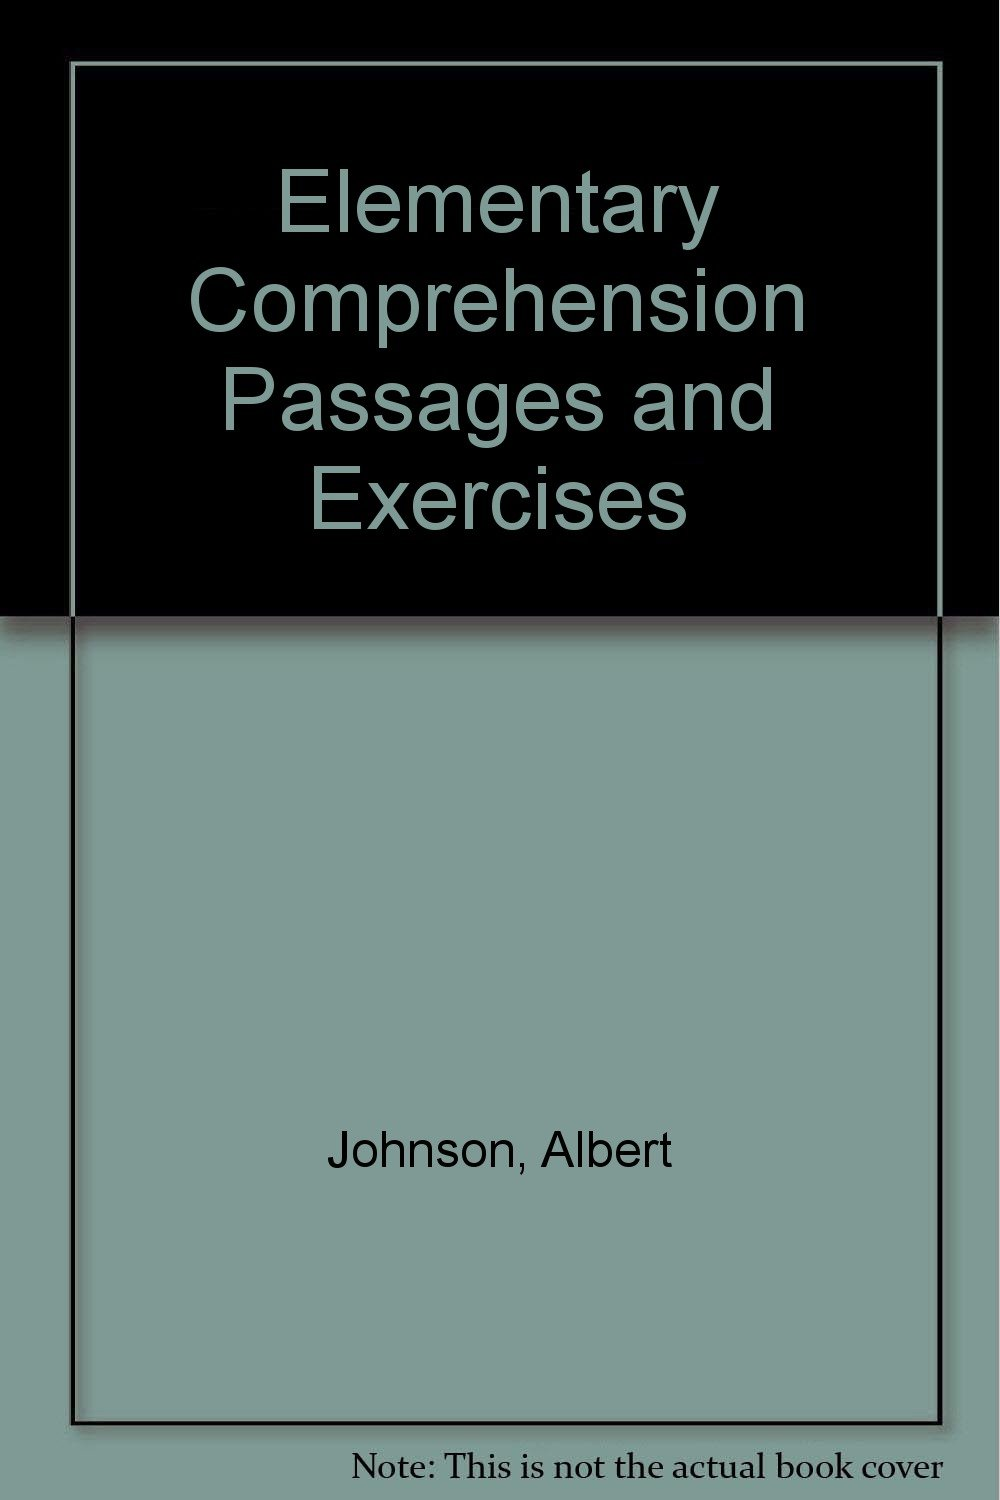 - Elementary Comprehension Passages And Exercises: Johnson, Albert